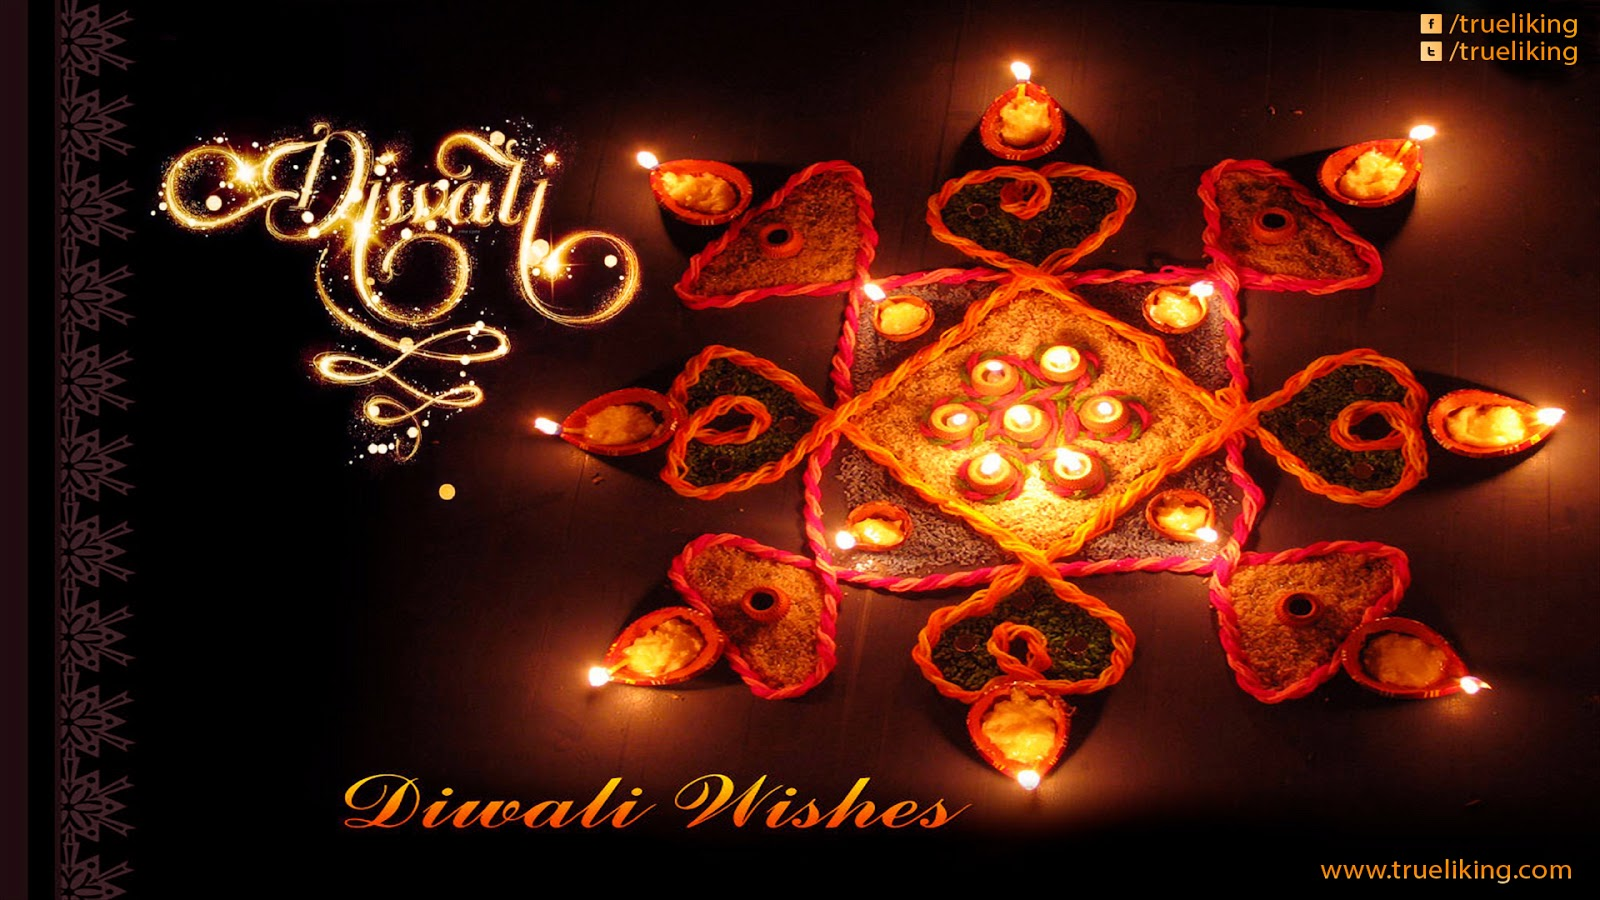 Deepavali Images And Wallpaper Download: Picpile: New 2014 Diwali Pictures